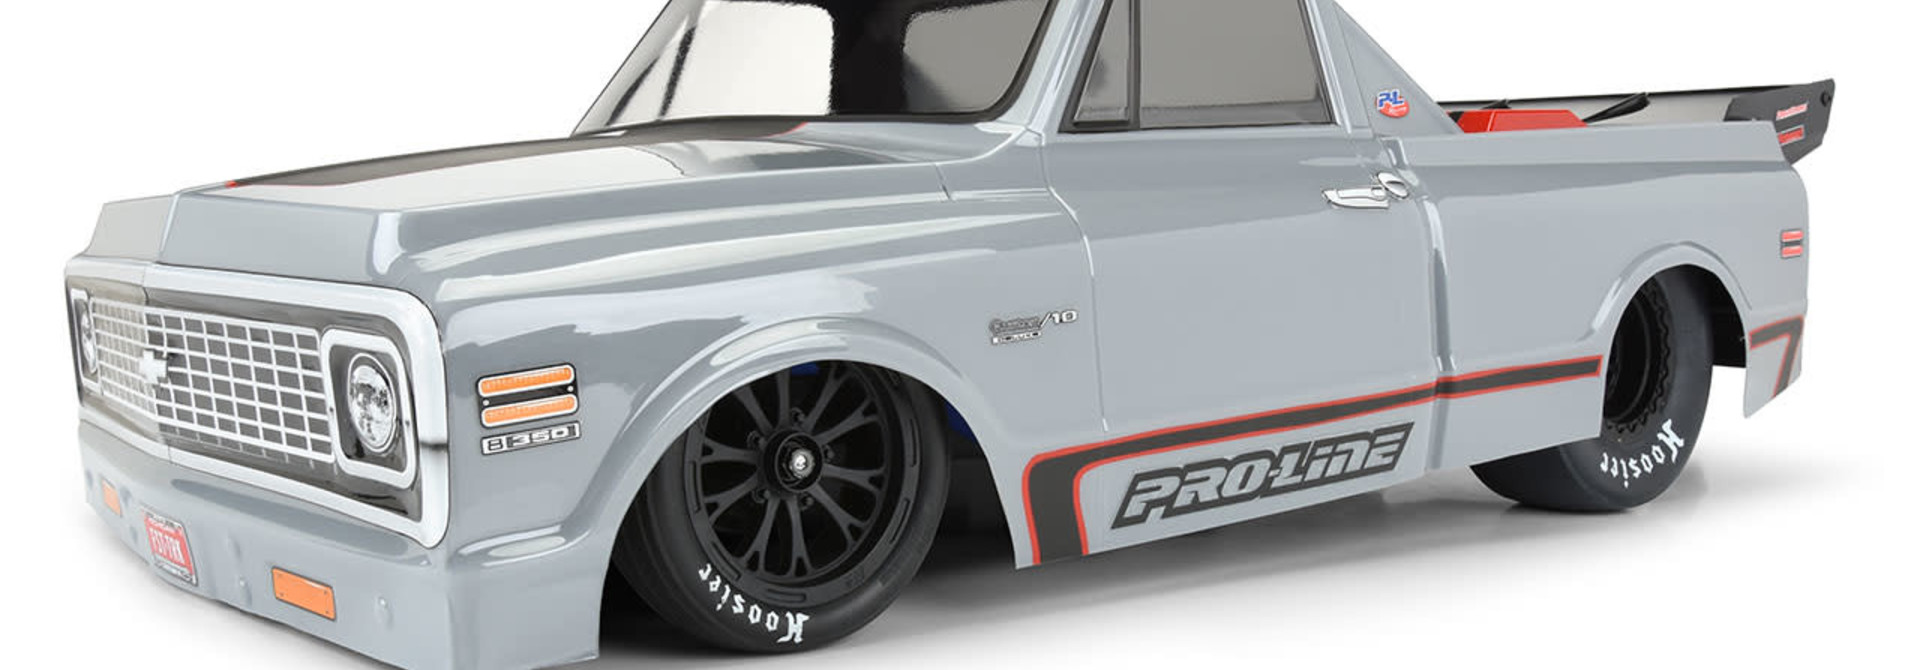 1972 Chevy C-10 Clear Body for Slash 2wd Drag Car & AE DR10 (with trimming)